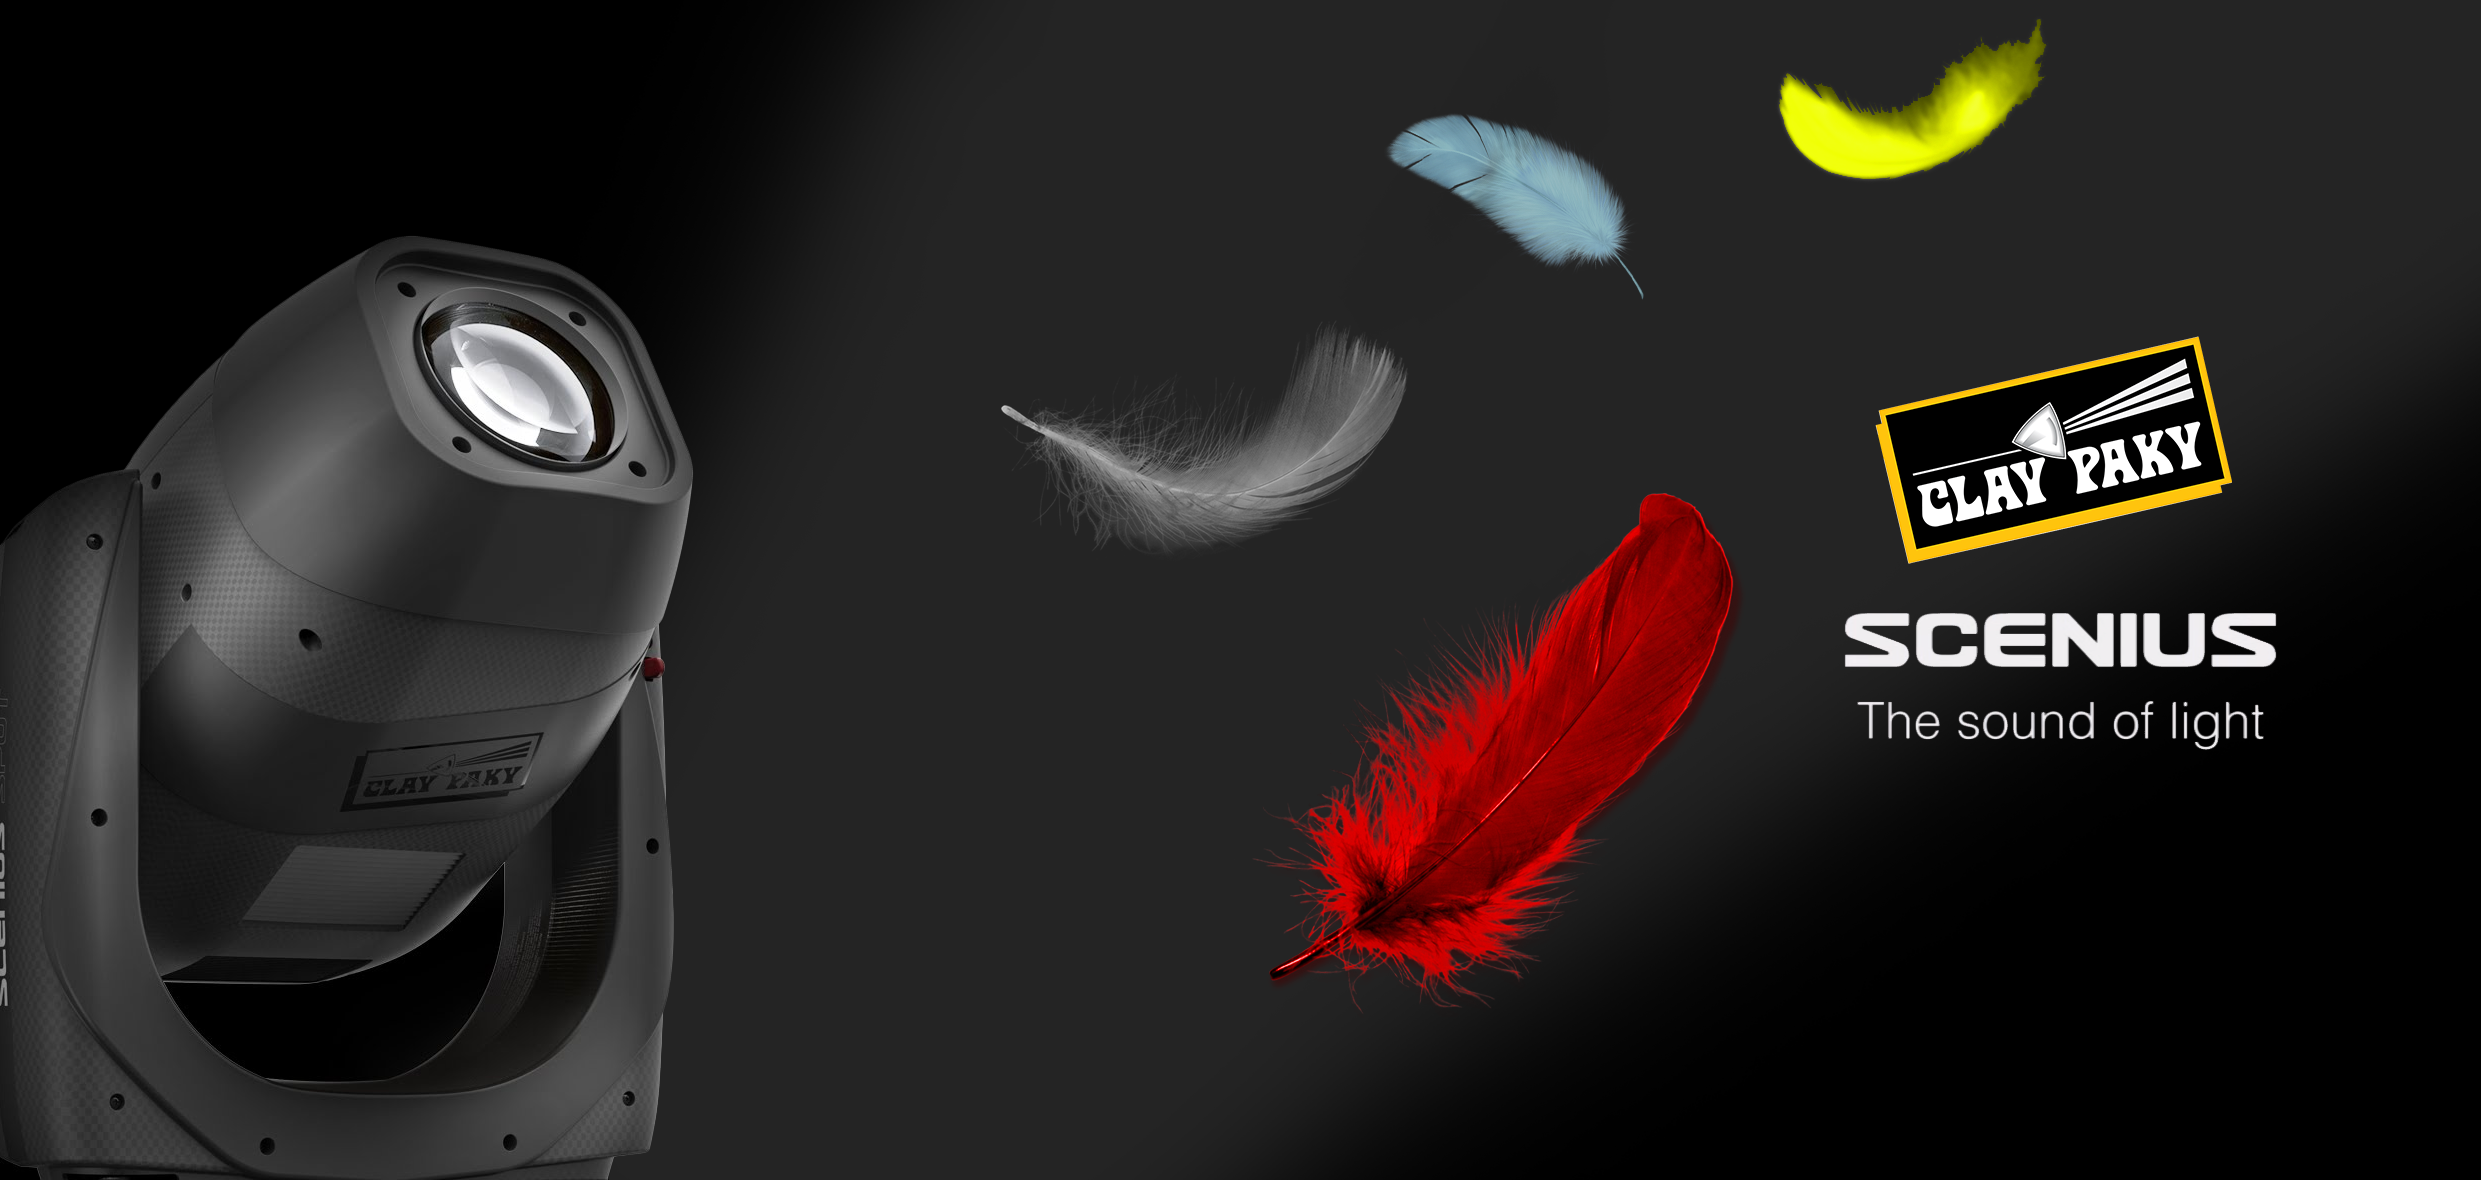 Clay Paky Scenius